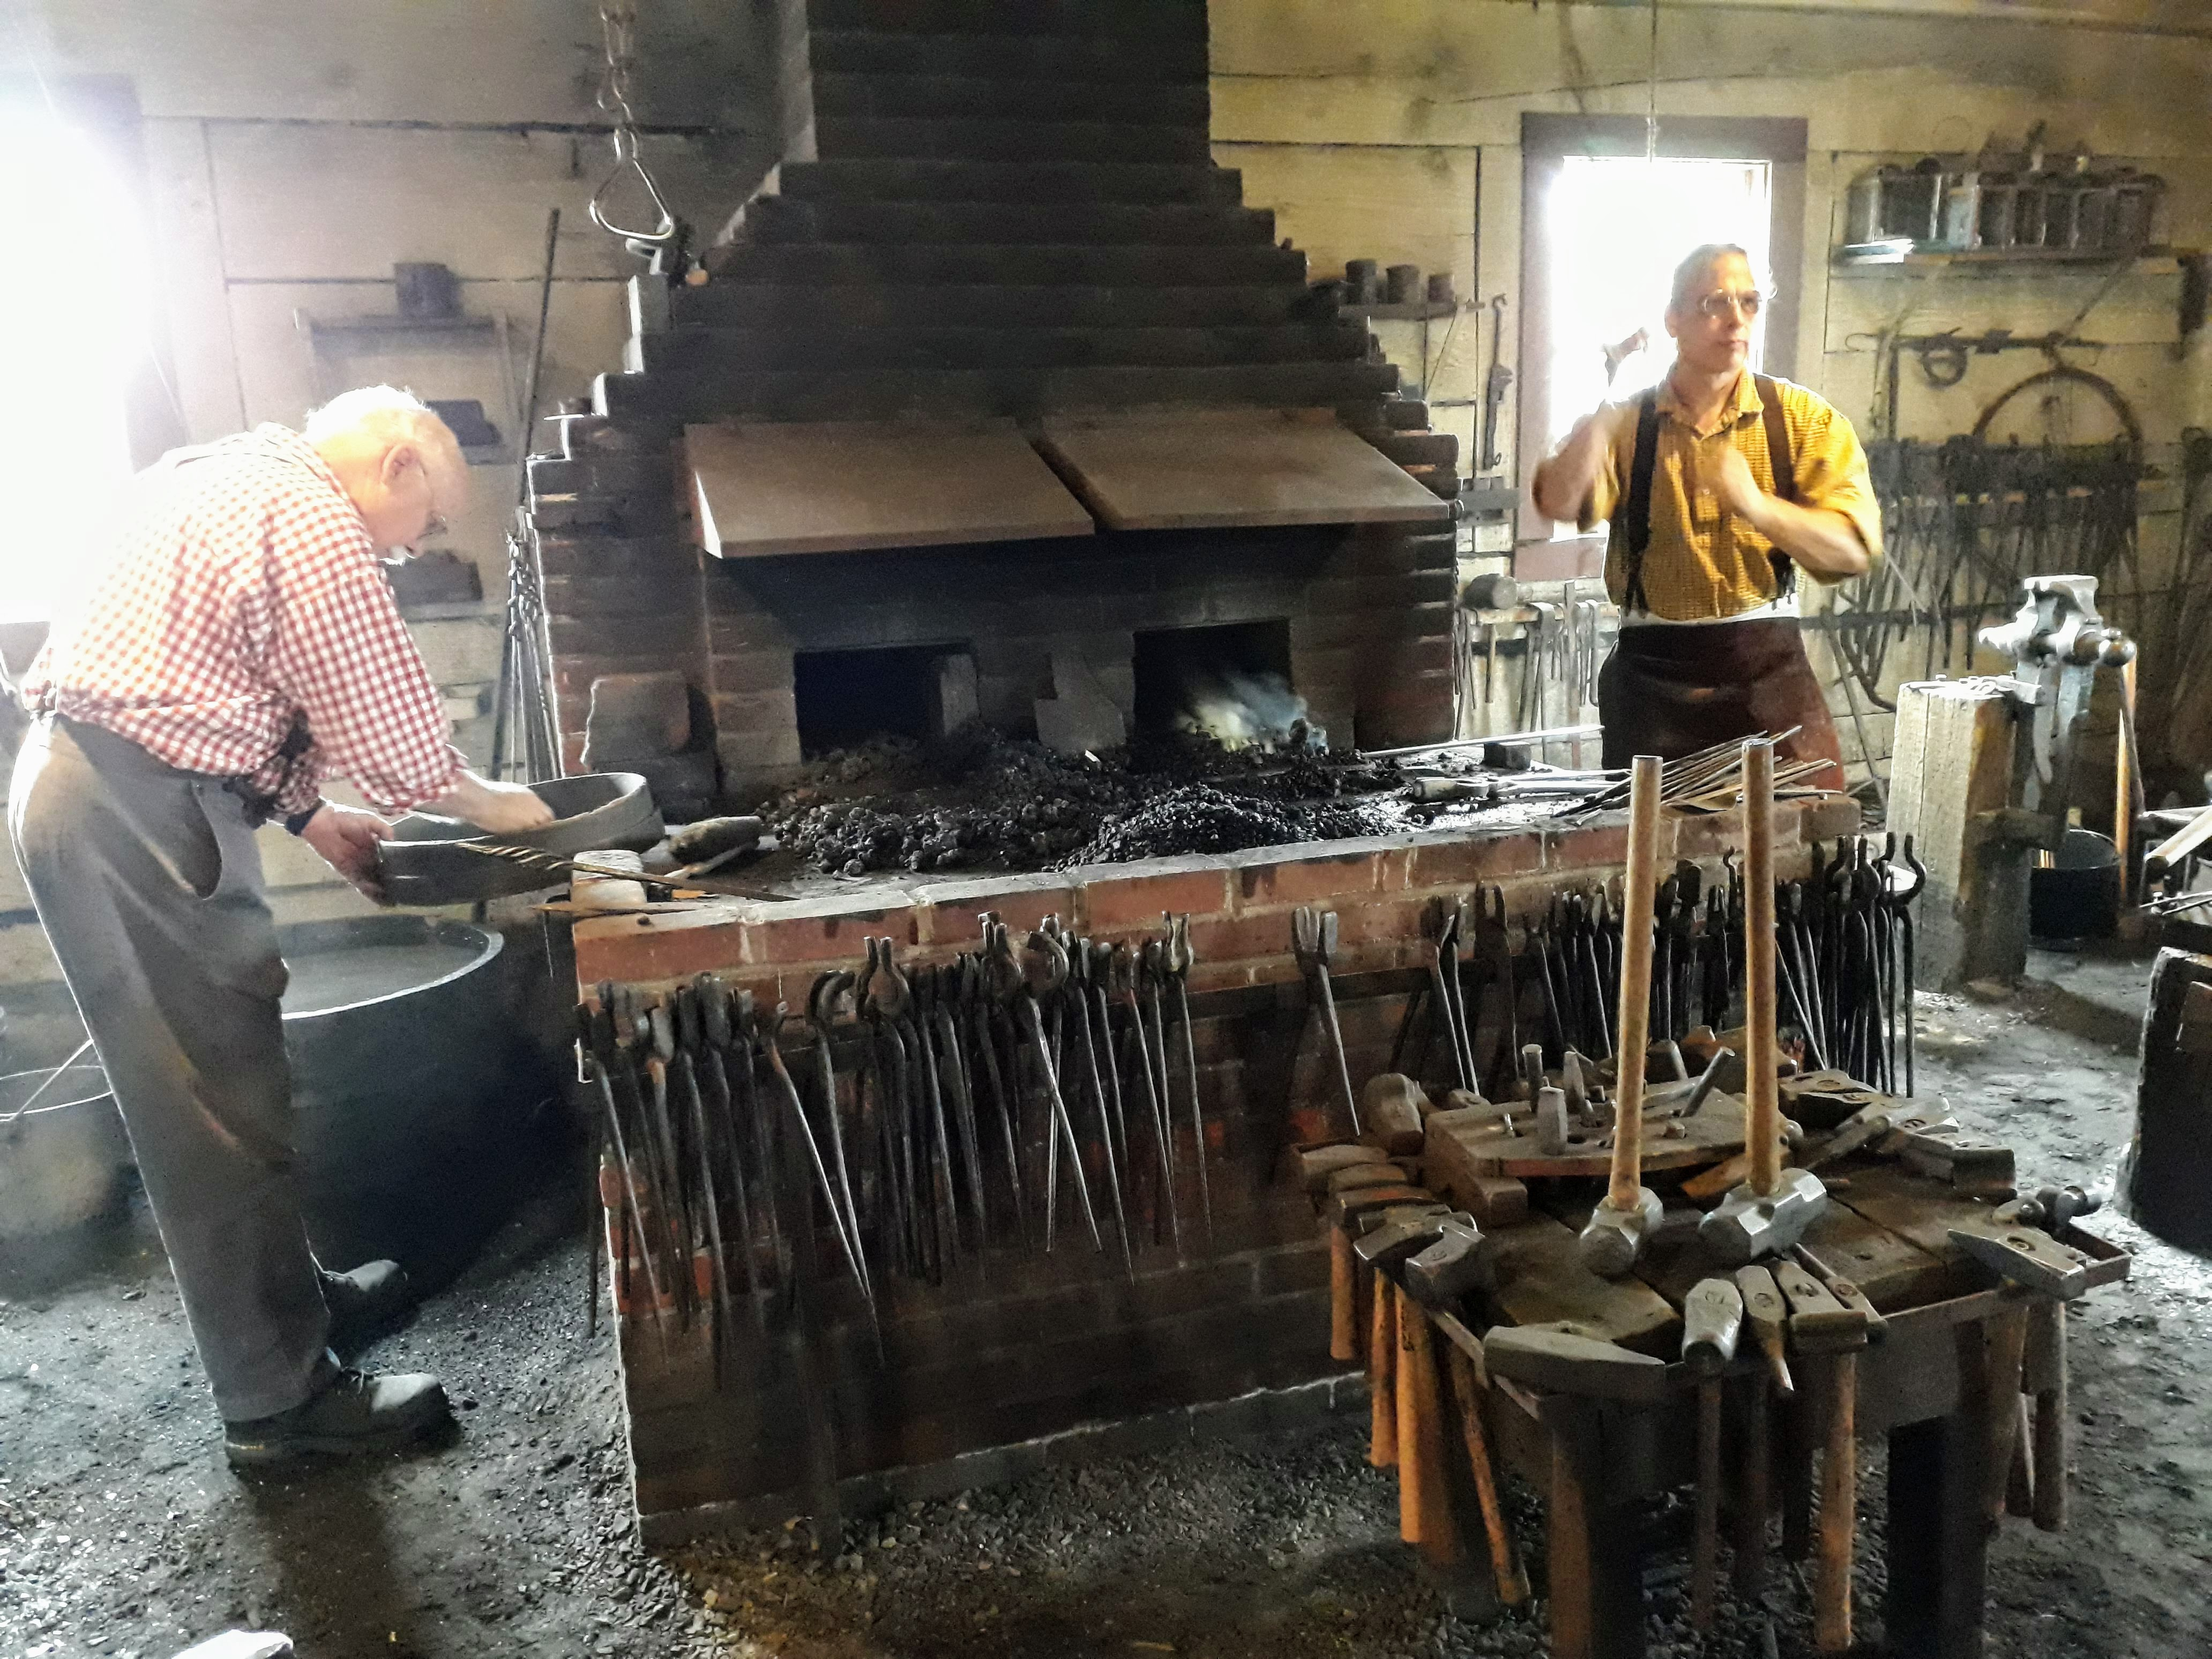 visiting Fort Vancouver - The Blacksmiths Shop